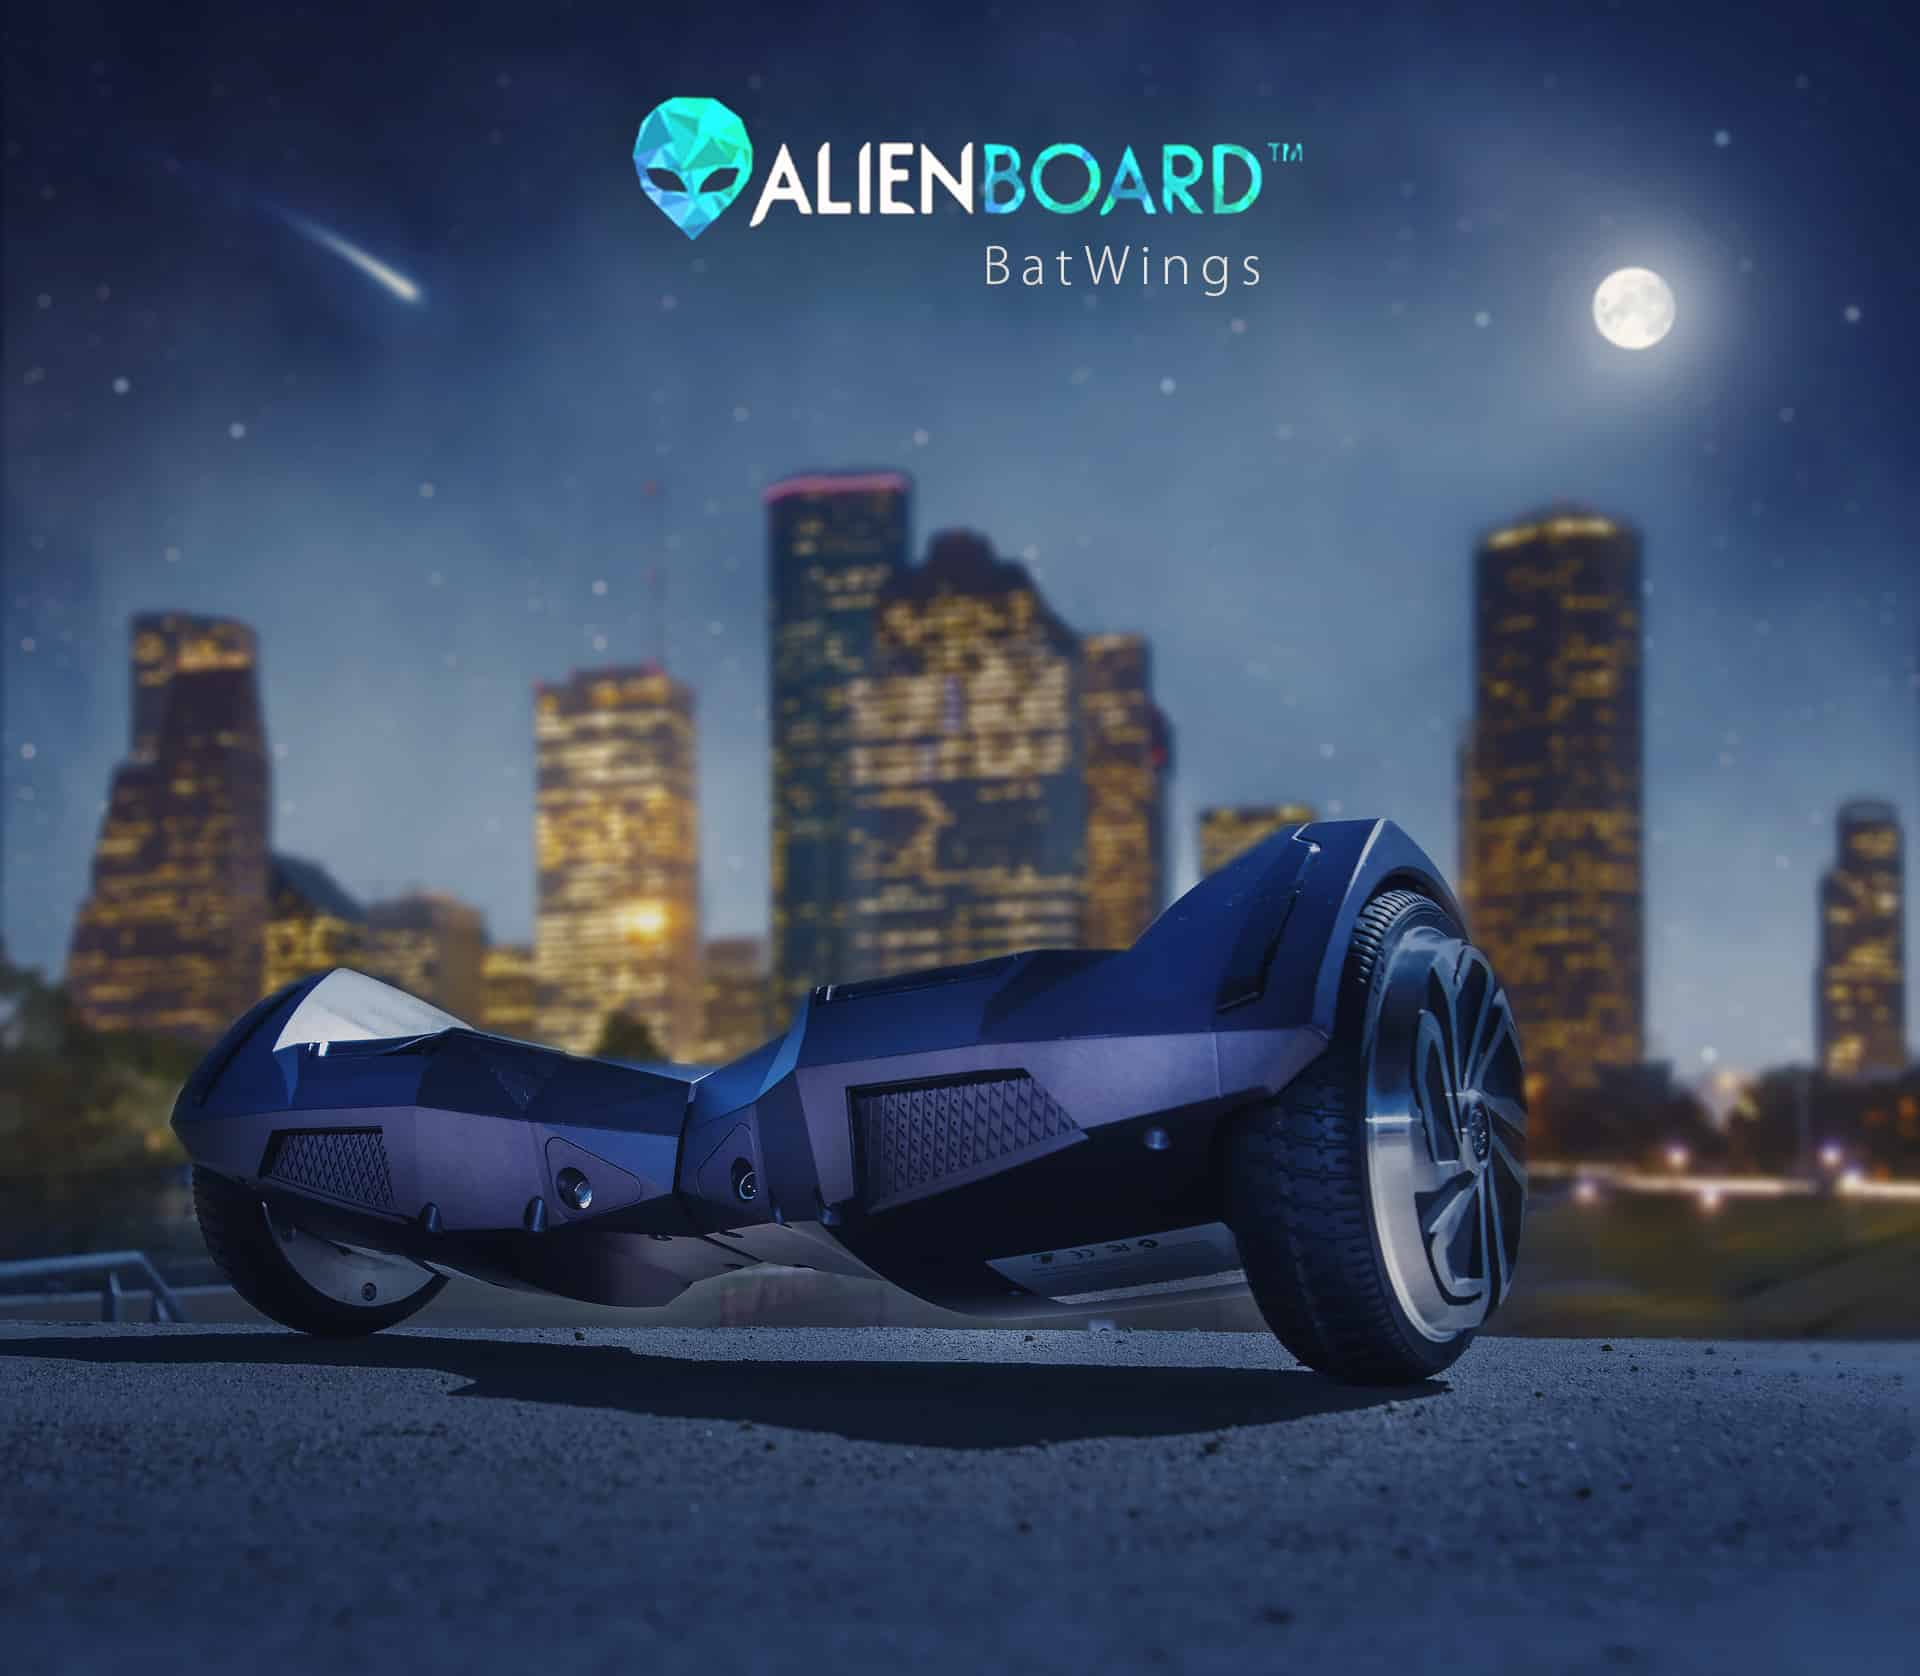 Alienboard Batwings